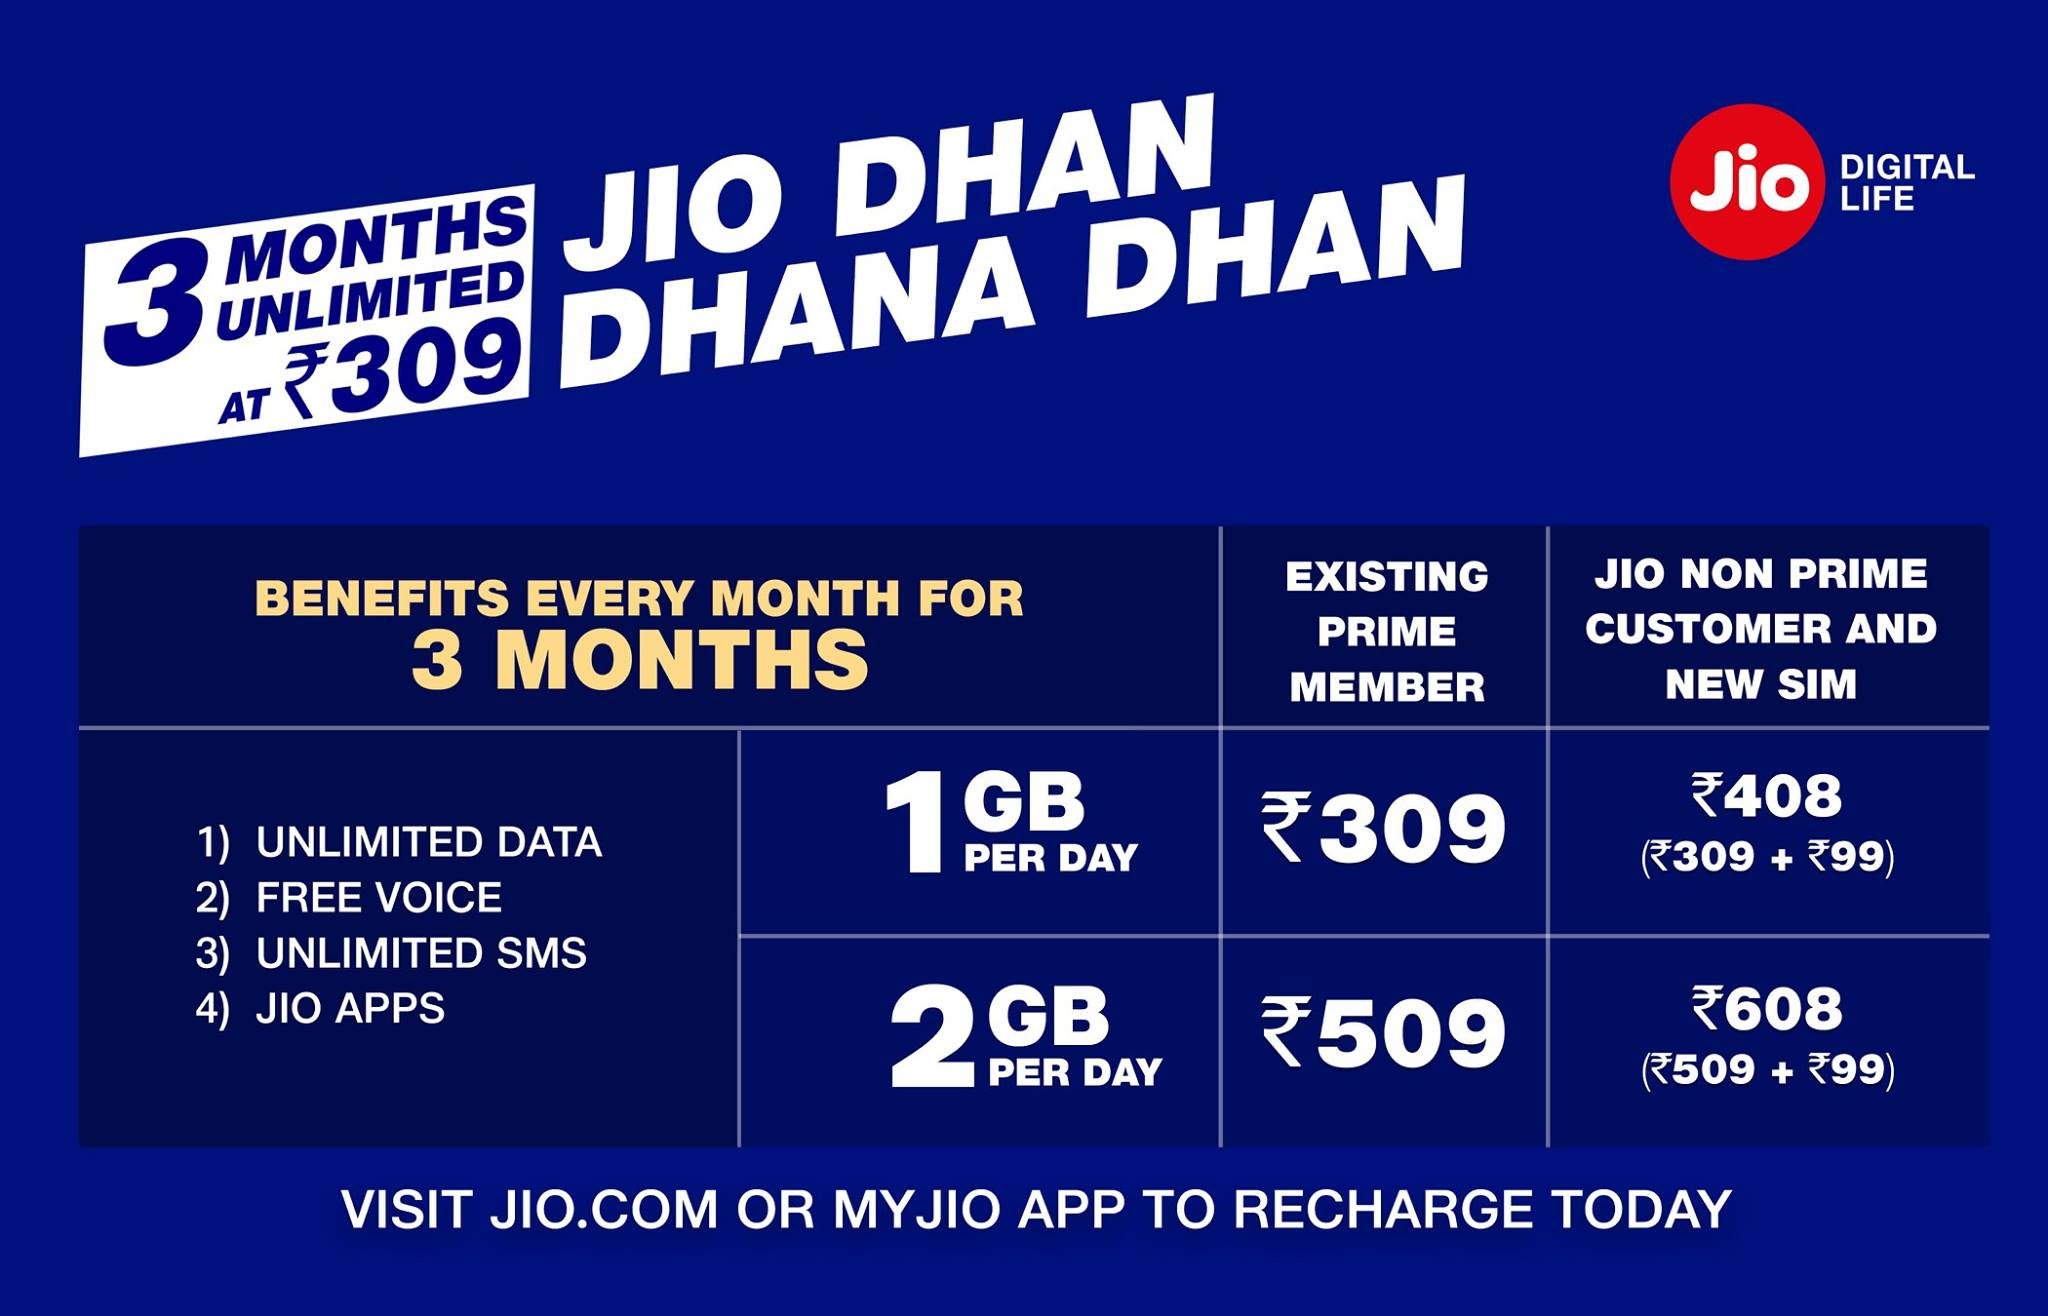 Reliance Jio Dhan Dhana Dhan offer